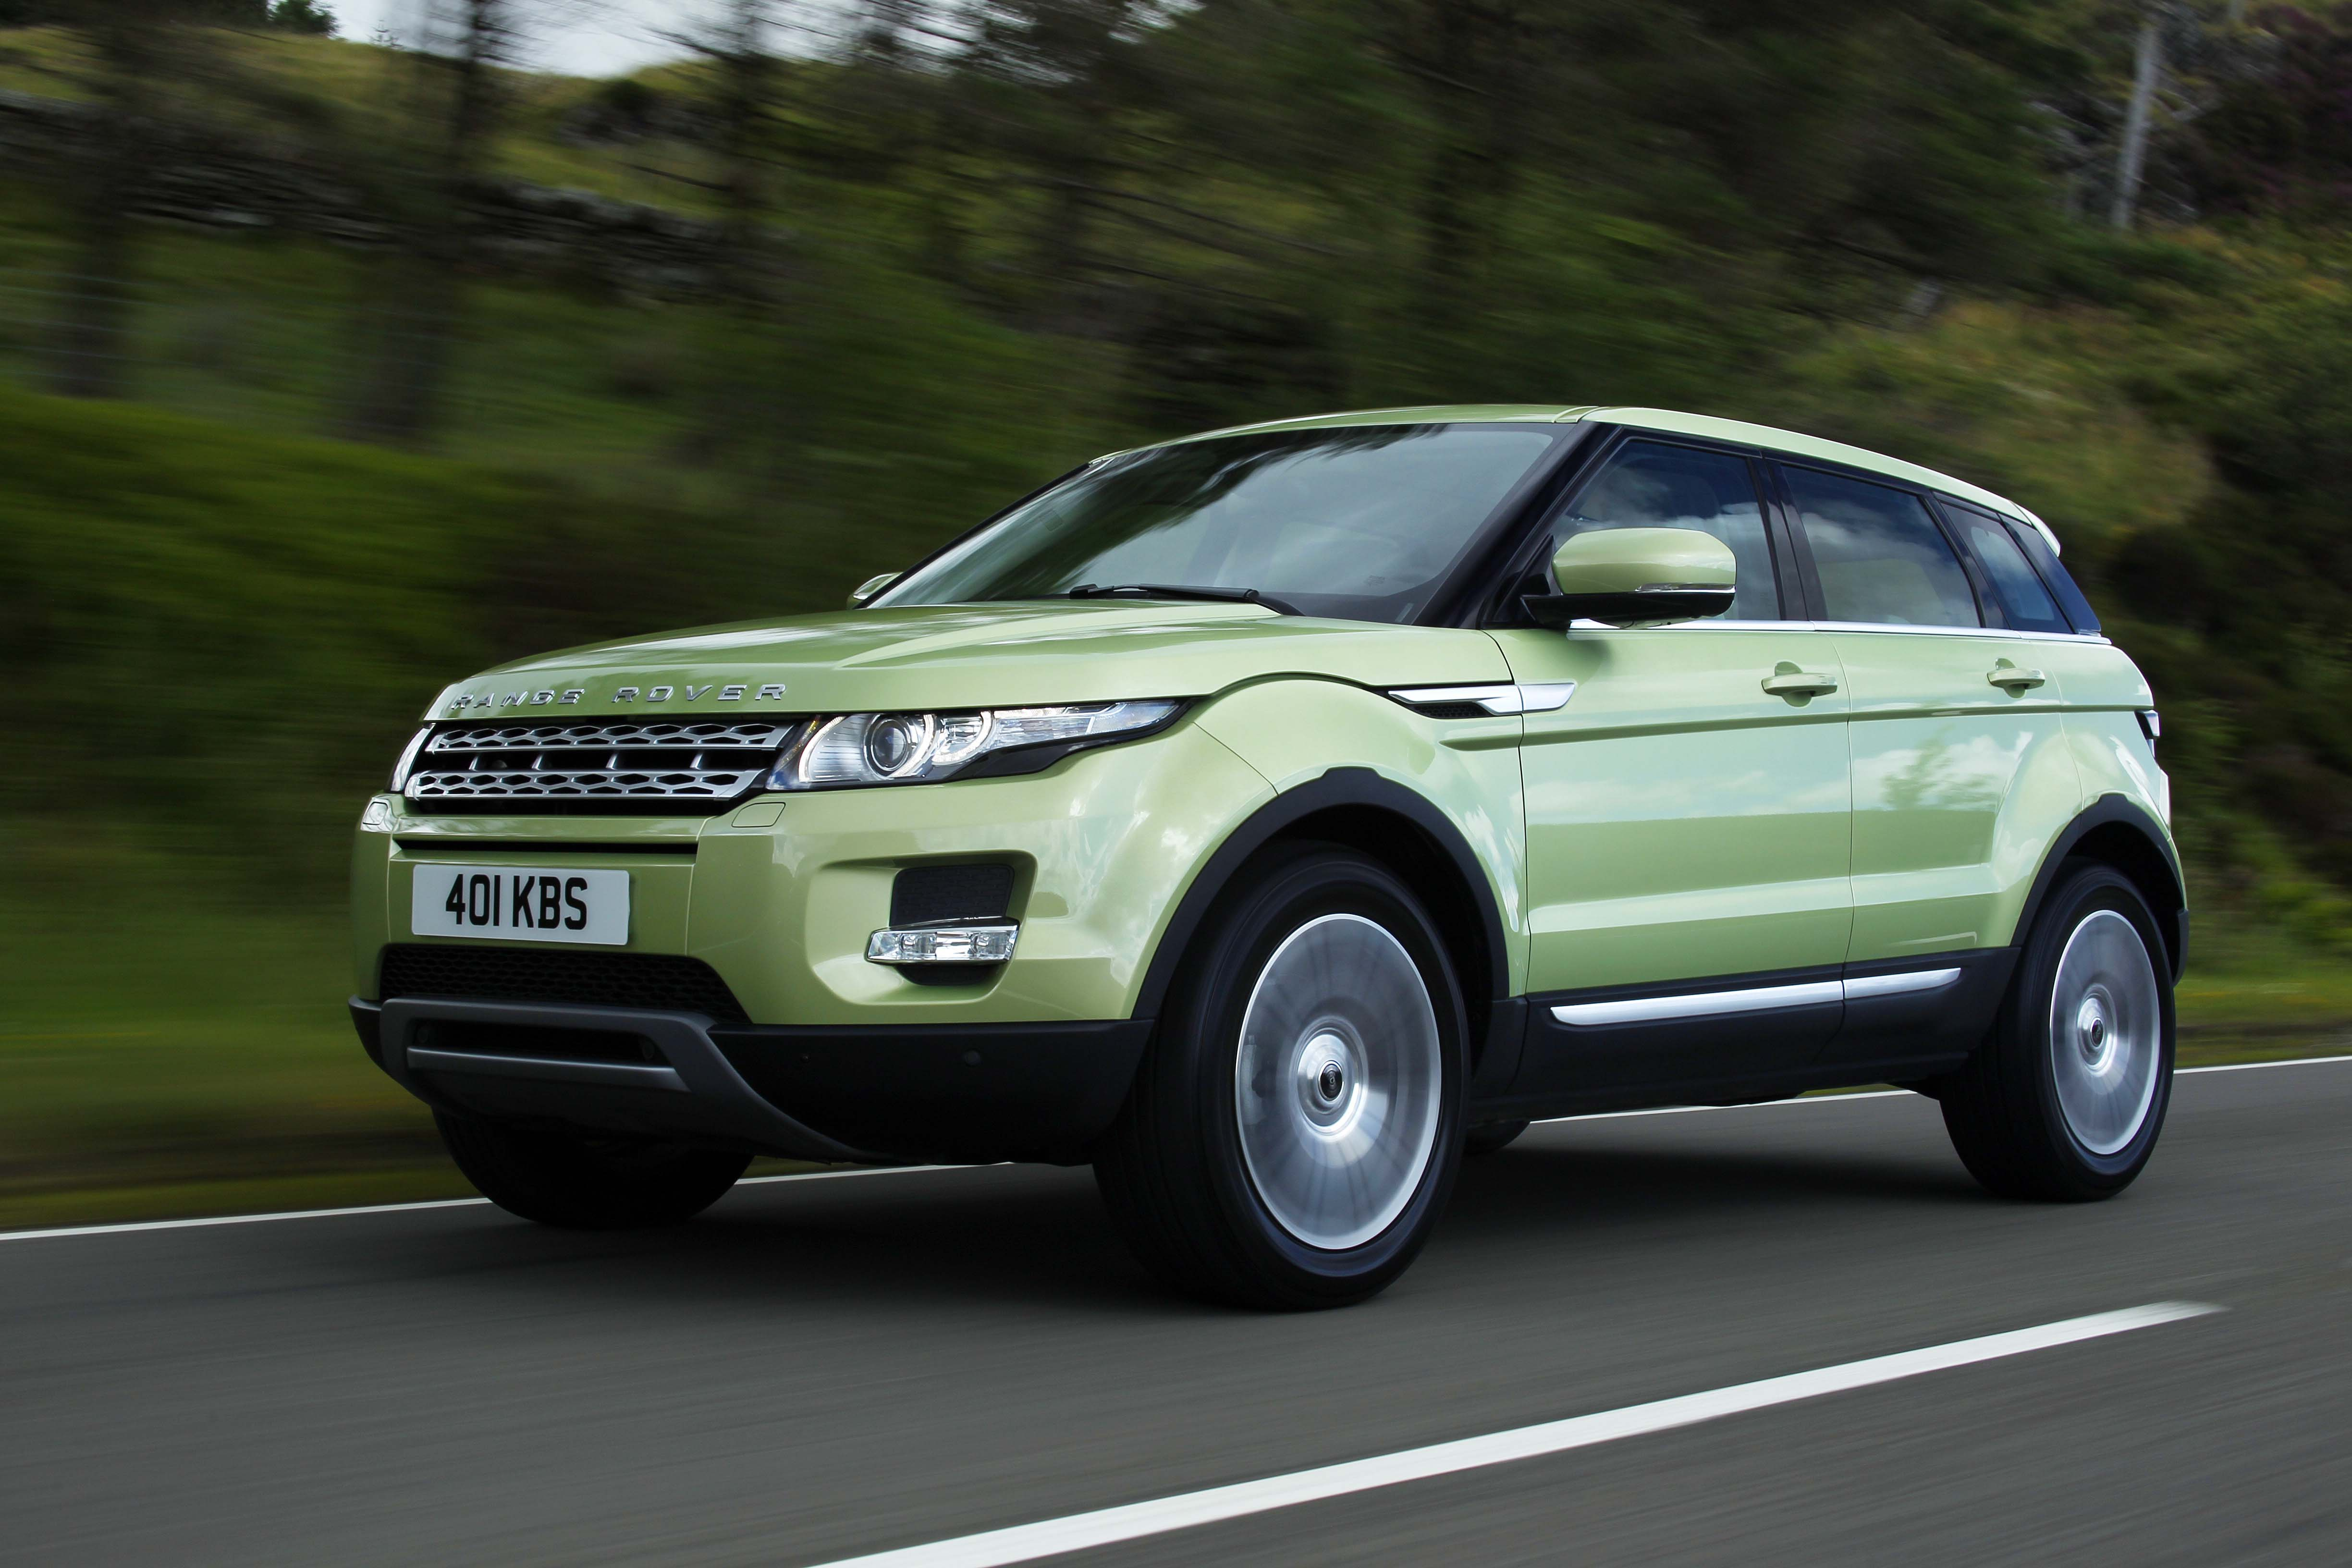 road test of range rover evoque prompts strong reactions. Black Bedroom Furniture Sets. Home Design Ideas